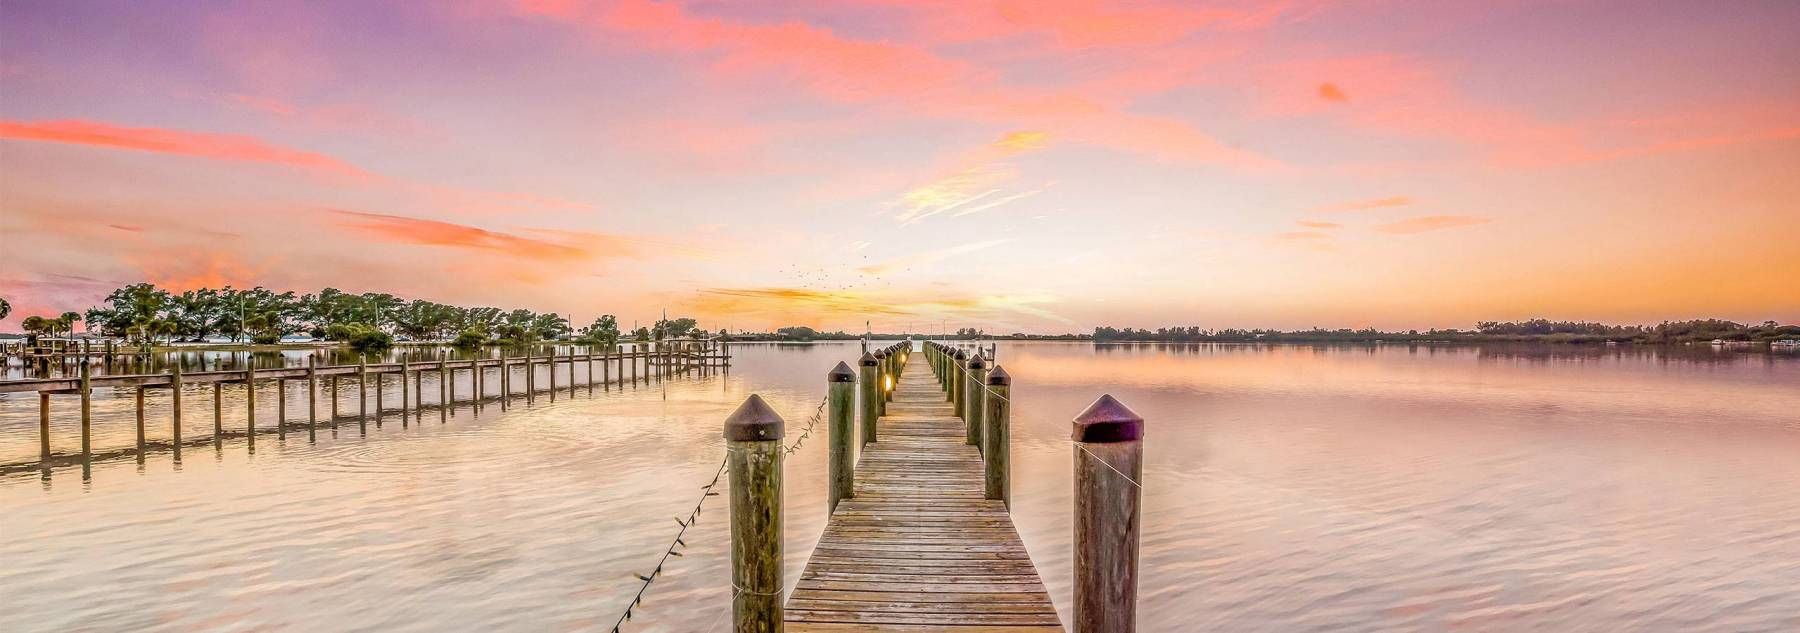 Bradenton Beach Vacation Rentals on the Water